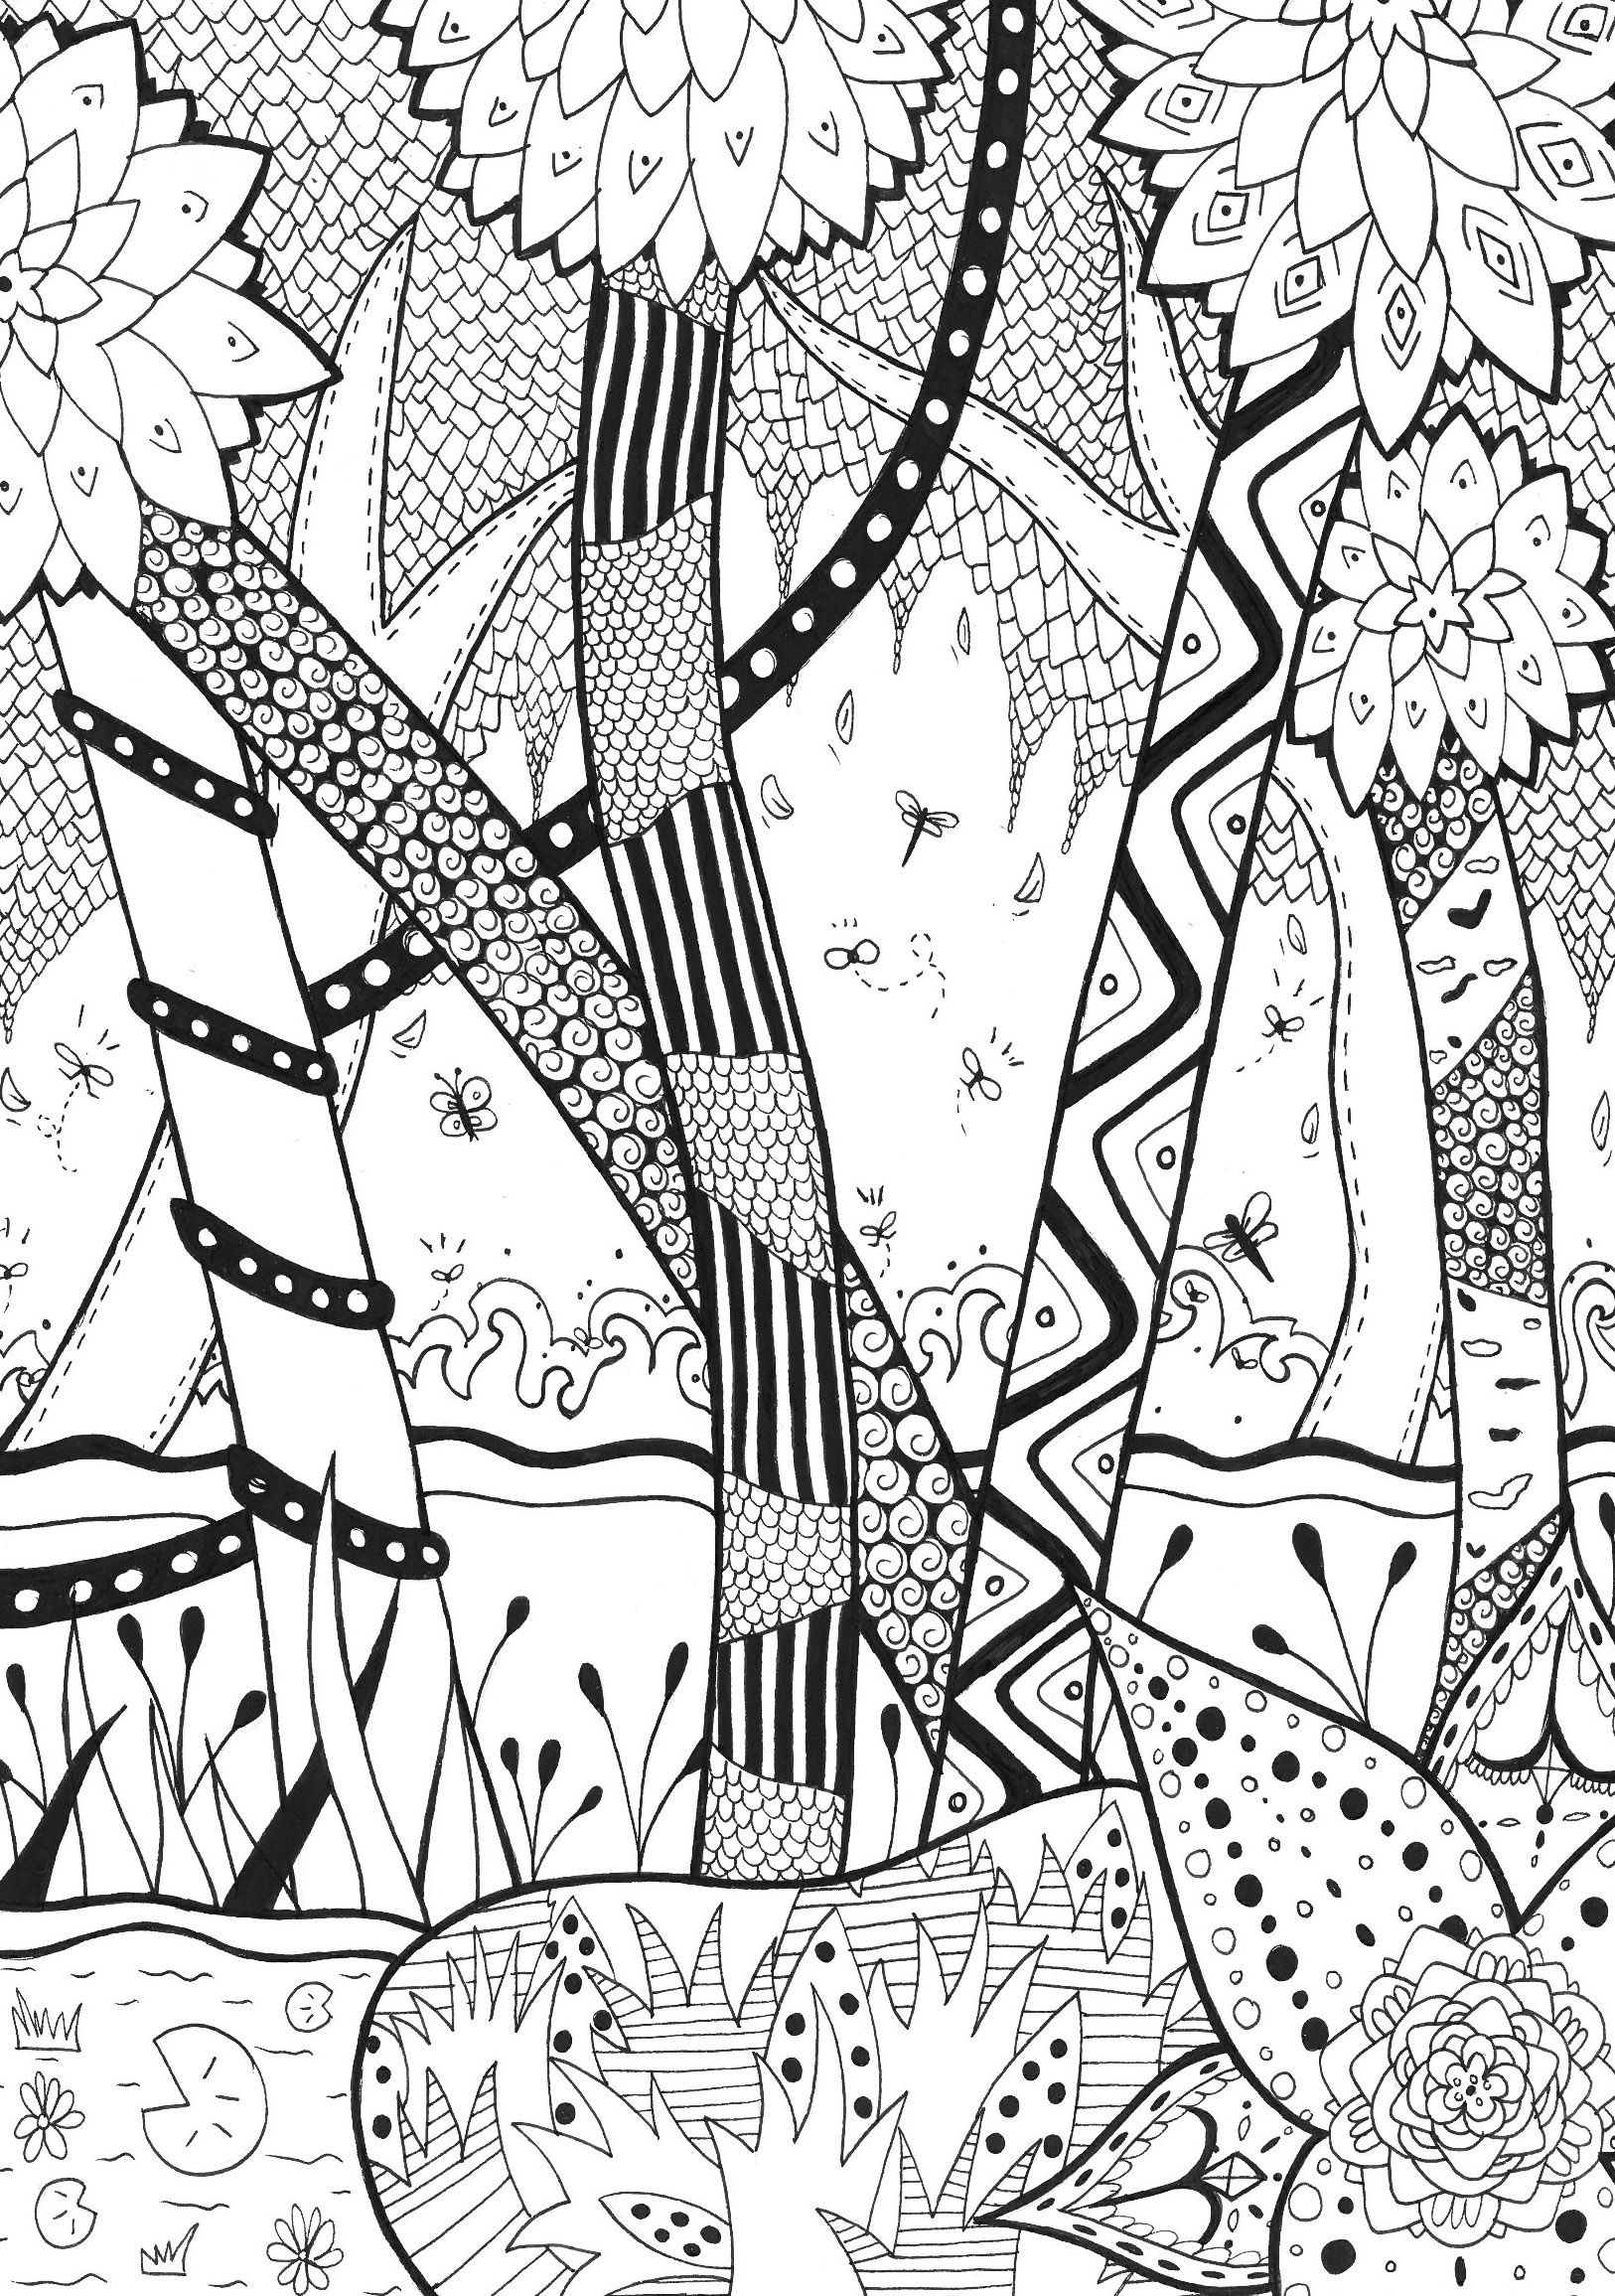 Enter In The Magical Forest Of Zentangle For A Coloring Page Time From Gallery ZentangleArtist Rachel